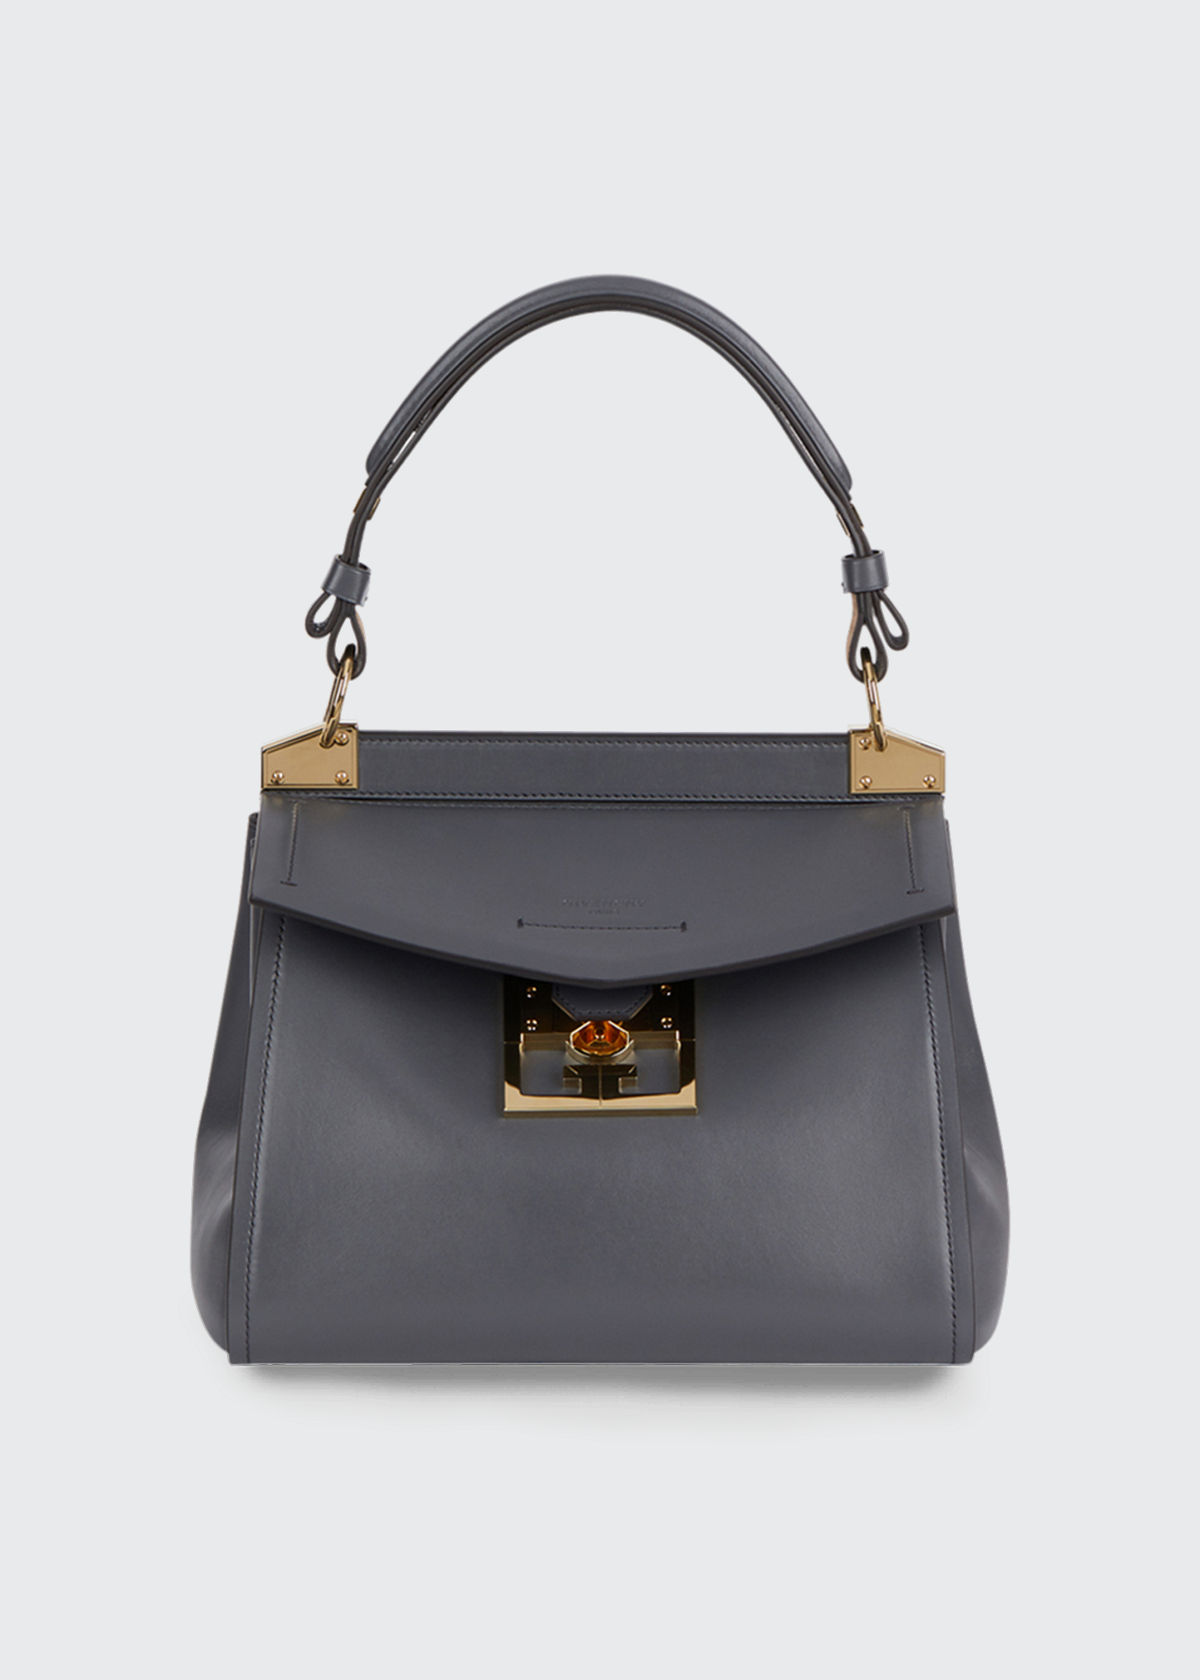 307828c1d33 Givenchy Mystic Small Calfskin Top-Handle Bag In Dark Gray ...